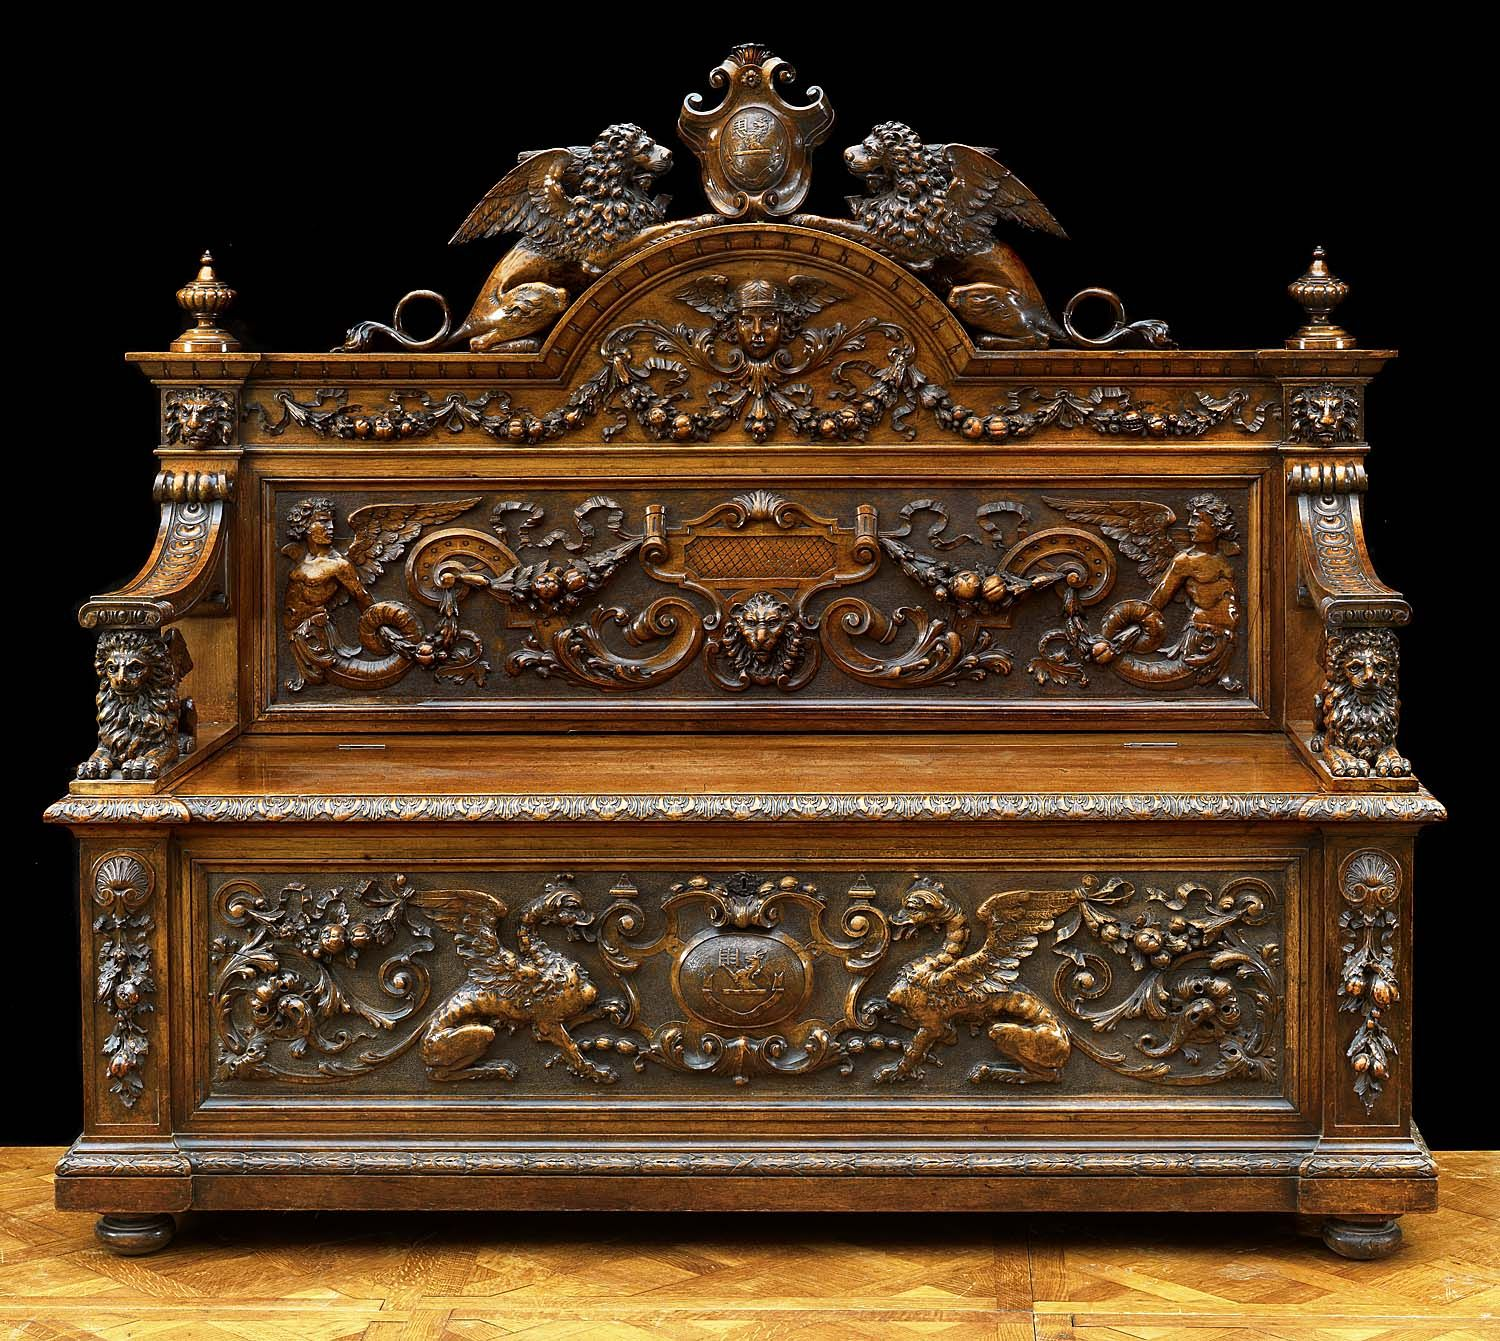 Antique Italian Casapanca Hall seat carved walnut in renaissance style. - Antique Italian Casapanca Hall Seat Carved Walnut In Renaissance